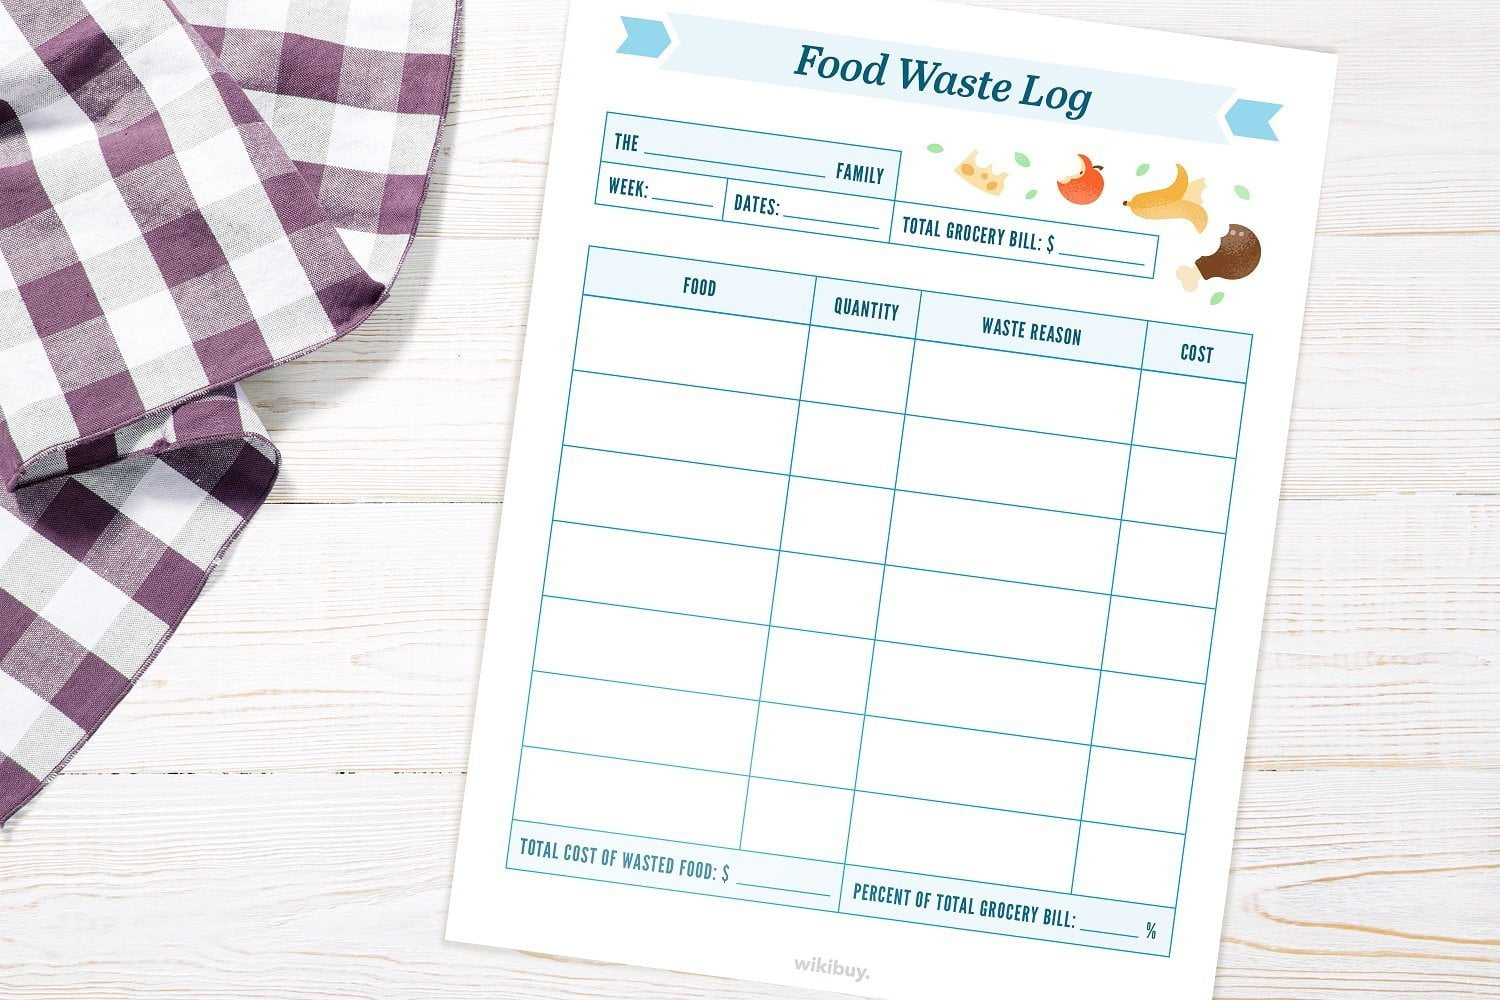 How to Reduce Food Waste Using a Log